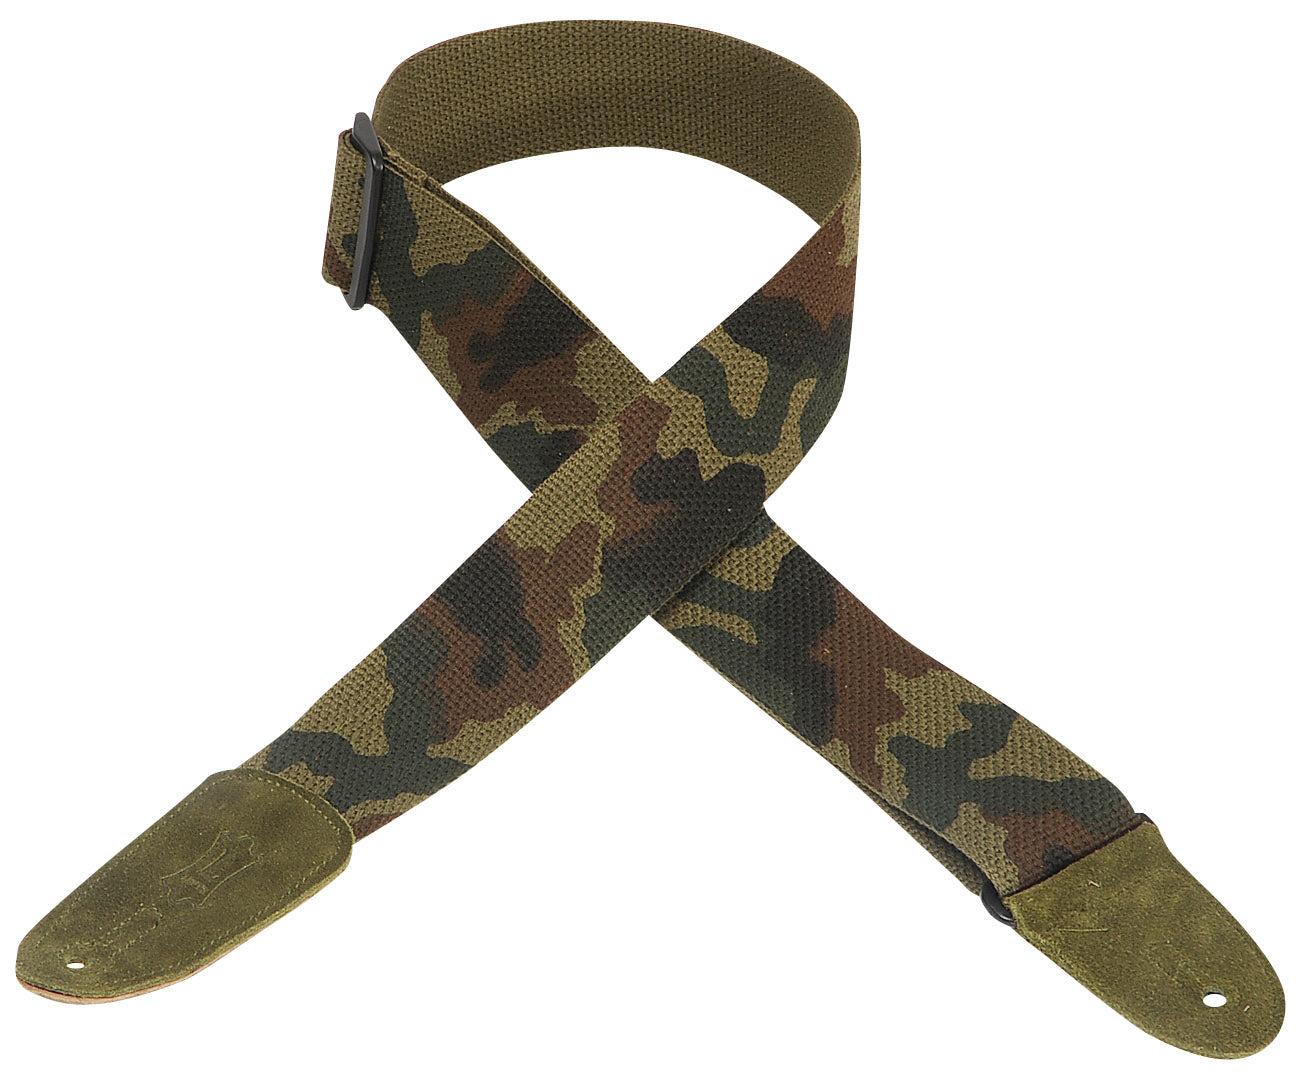 "LEVY'S 2"" COTTON GUITAR STRAP WITH SUEDE ENDS- CAMO"